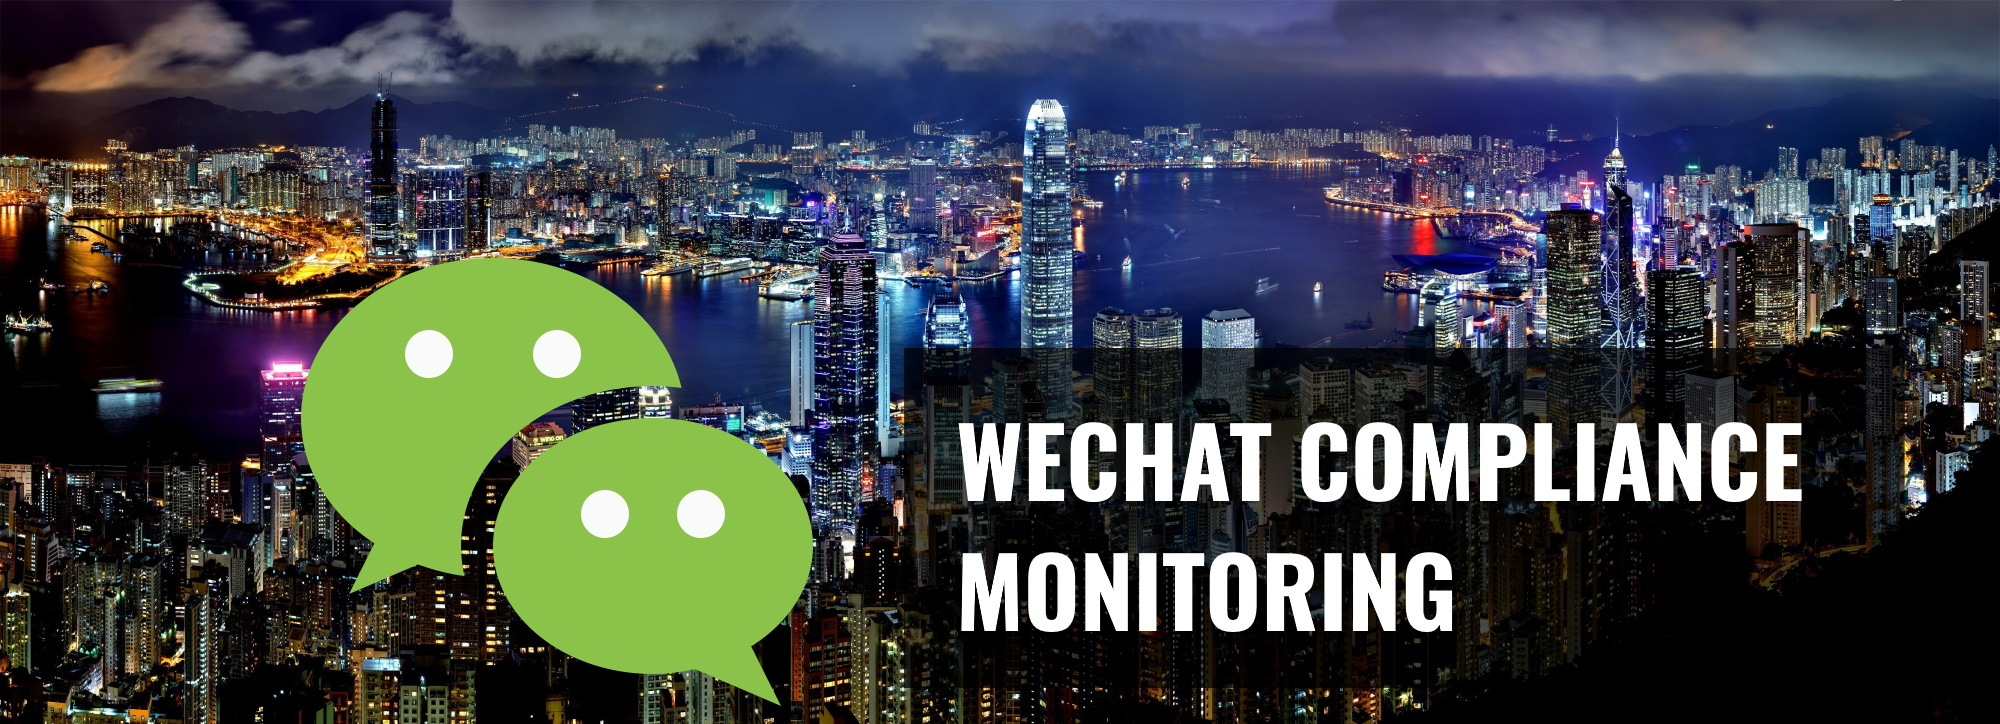 WeChat Recording and Archiving for Regulatory Compliance